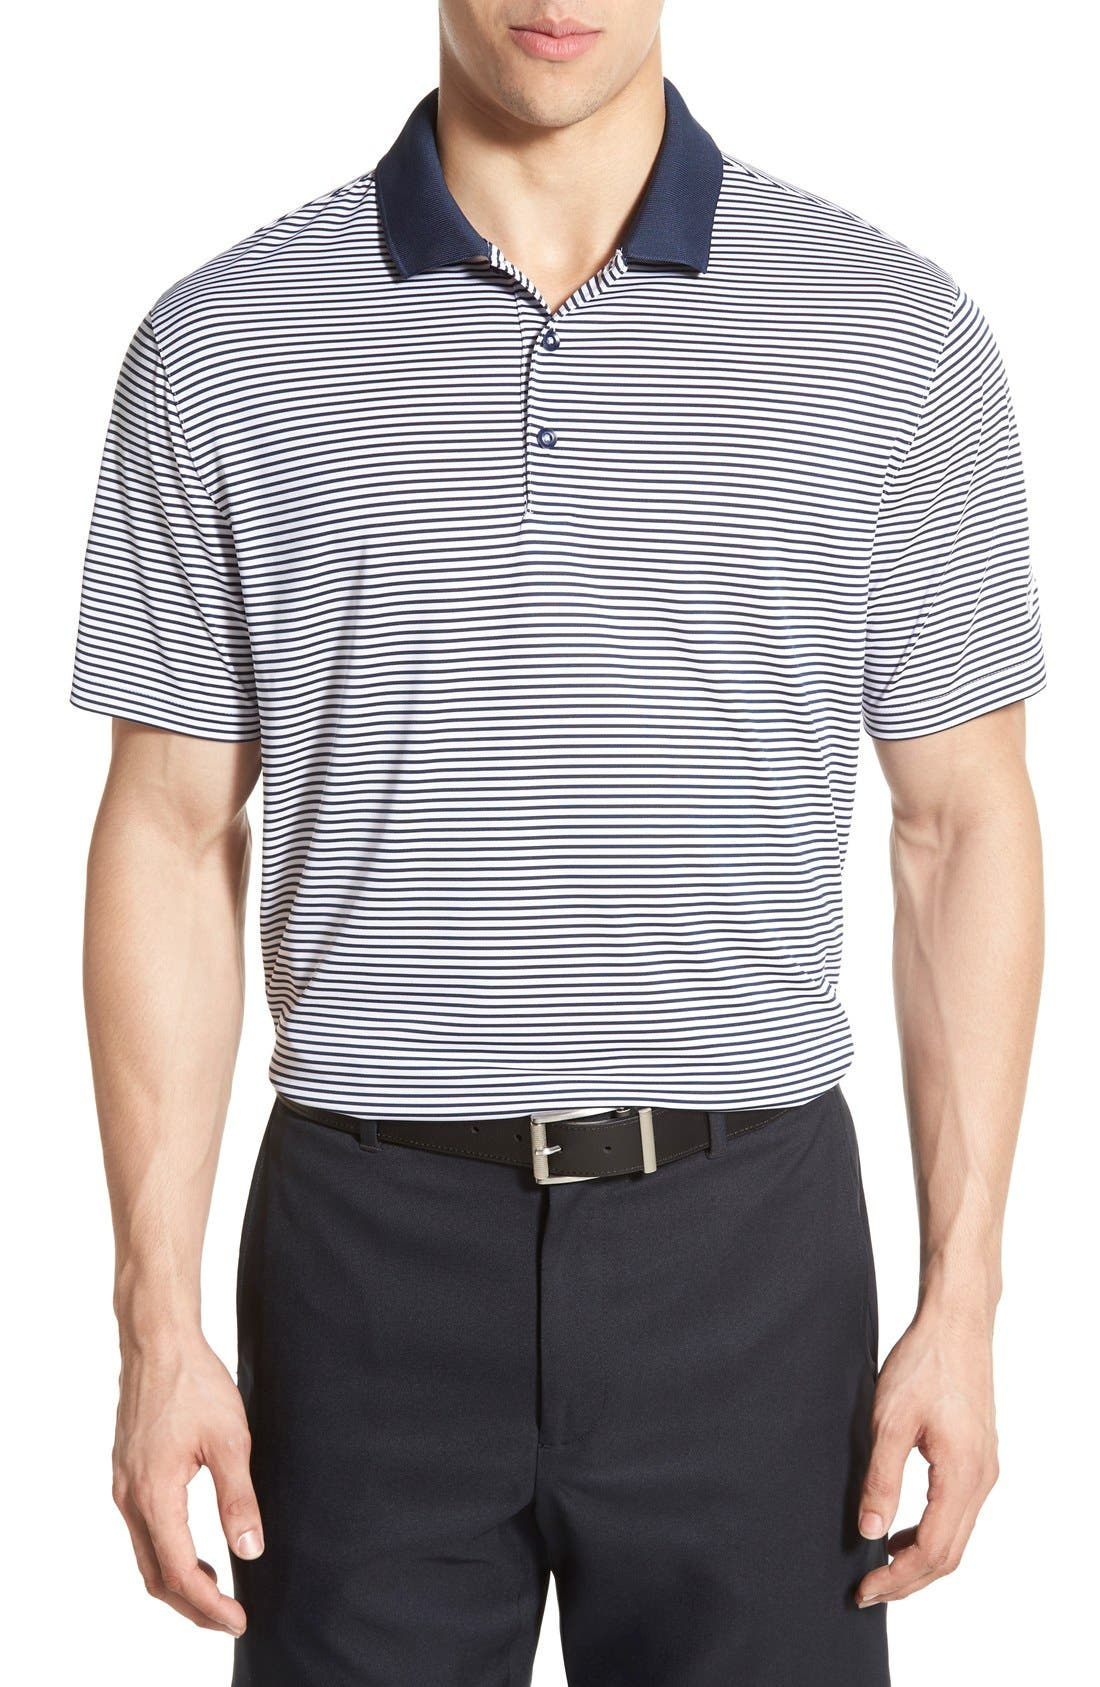 Nike 'Victory Stripe' Dri-FIT Golf Polo